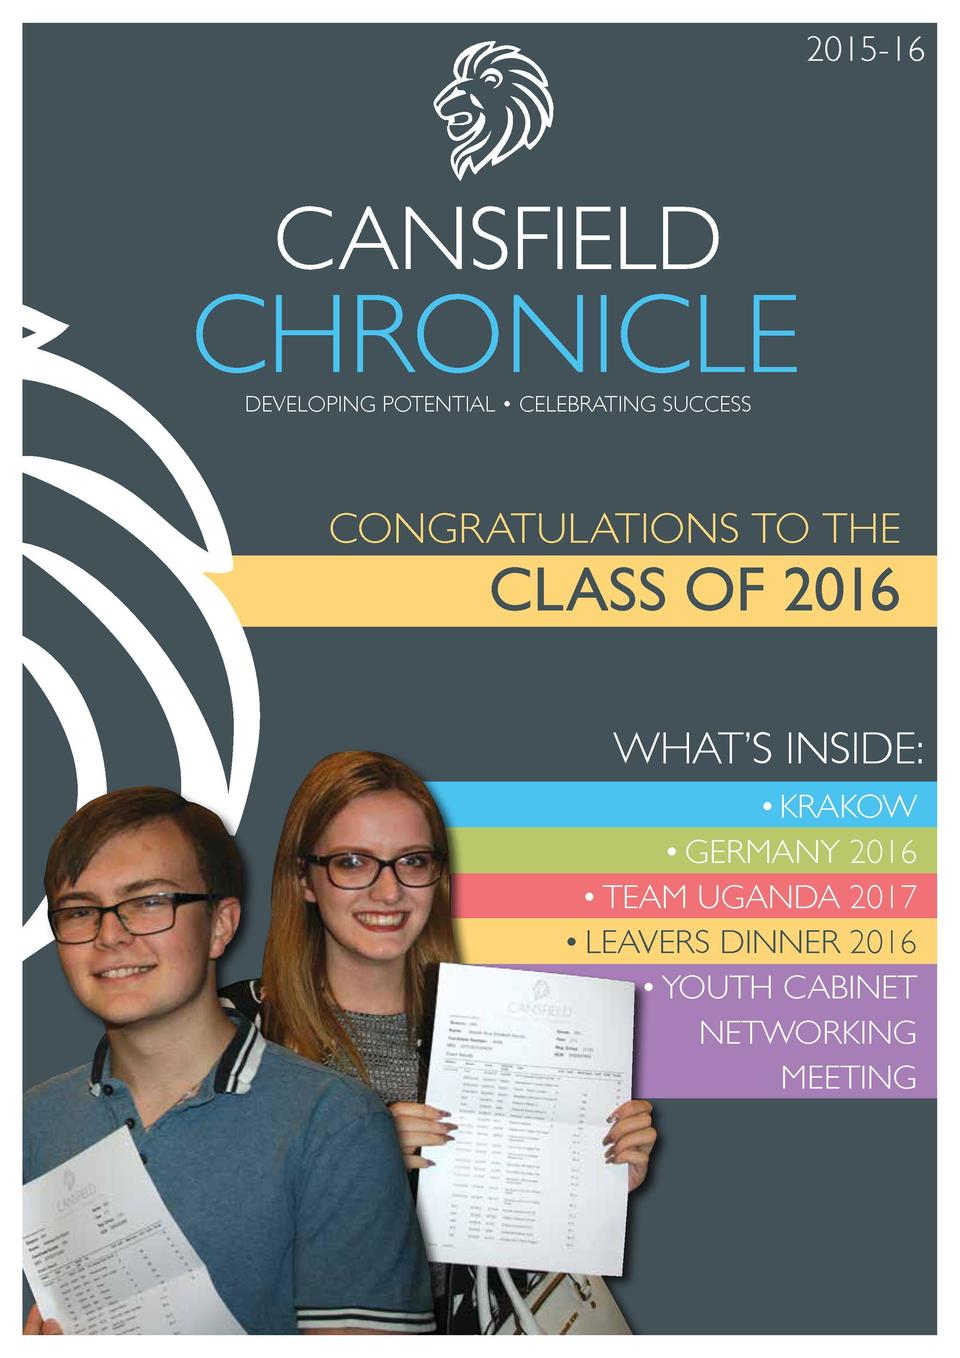 2015-16  CHRONICLE DEVELOPING POTENTIAL     CELEBRATING SUCCESS  CONGRATULATIONS TO THE  CLASS OF 2016 WHAT   S INSIDE   D...